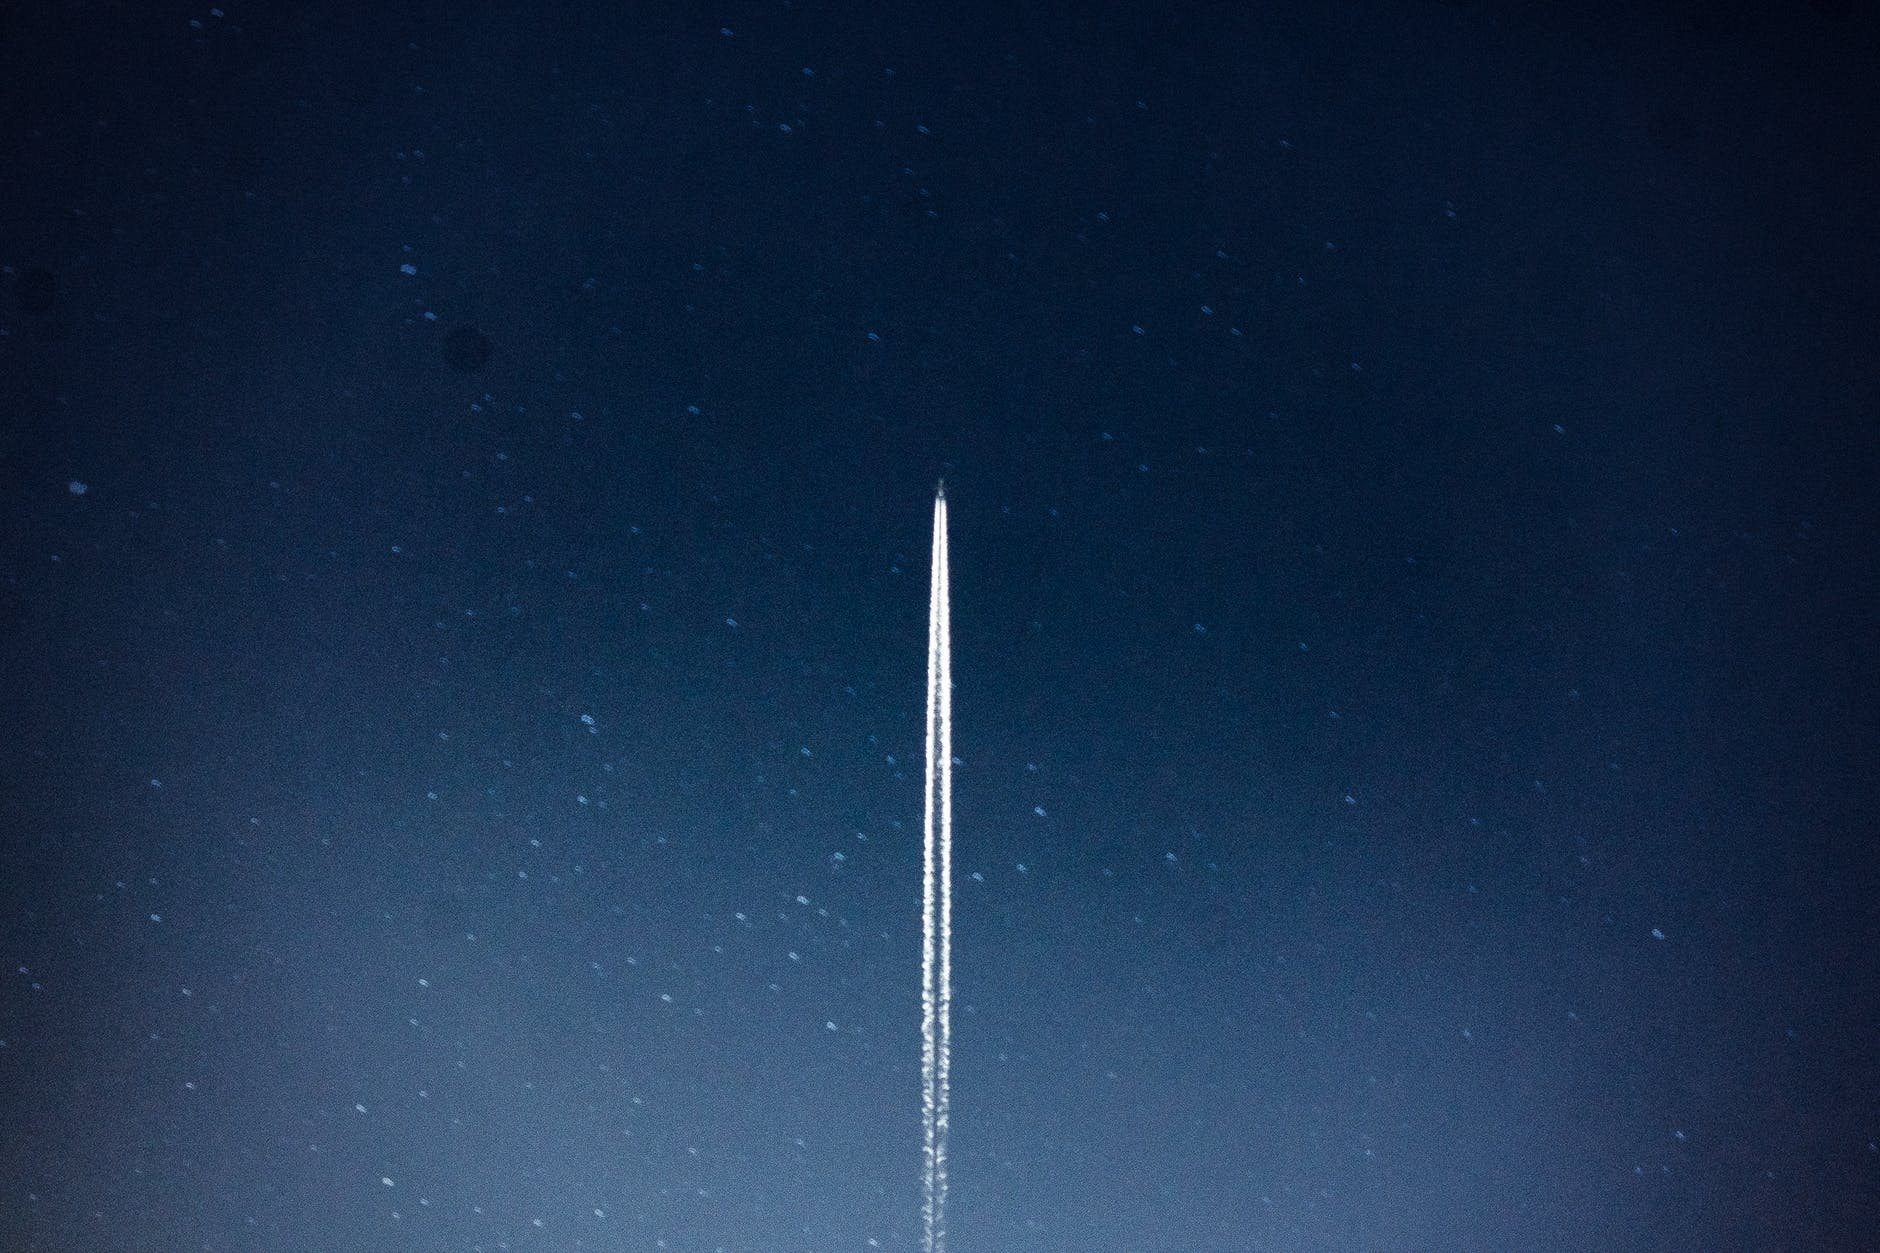 space shuttle launch during nighttime